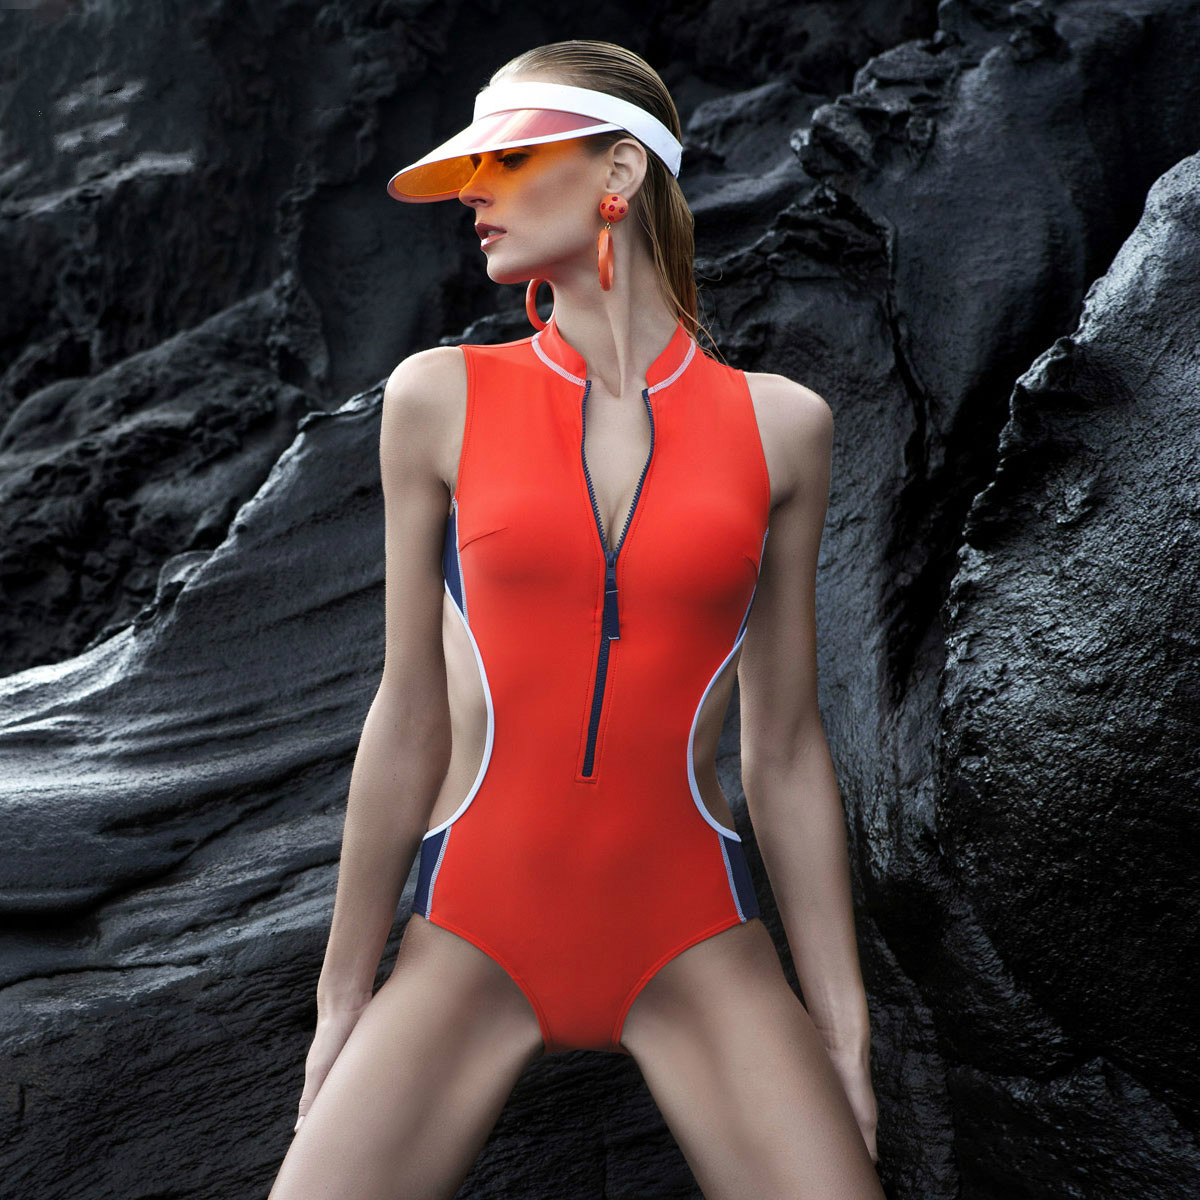 NIUMO New Professional swimsuit woman High collar one piece Small breasts together big yards conservative niumo new one piece swimsuit woman skirt type small chest gather hot springs student swimsuit beach swim swimwear